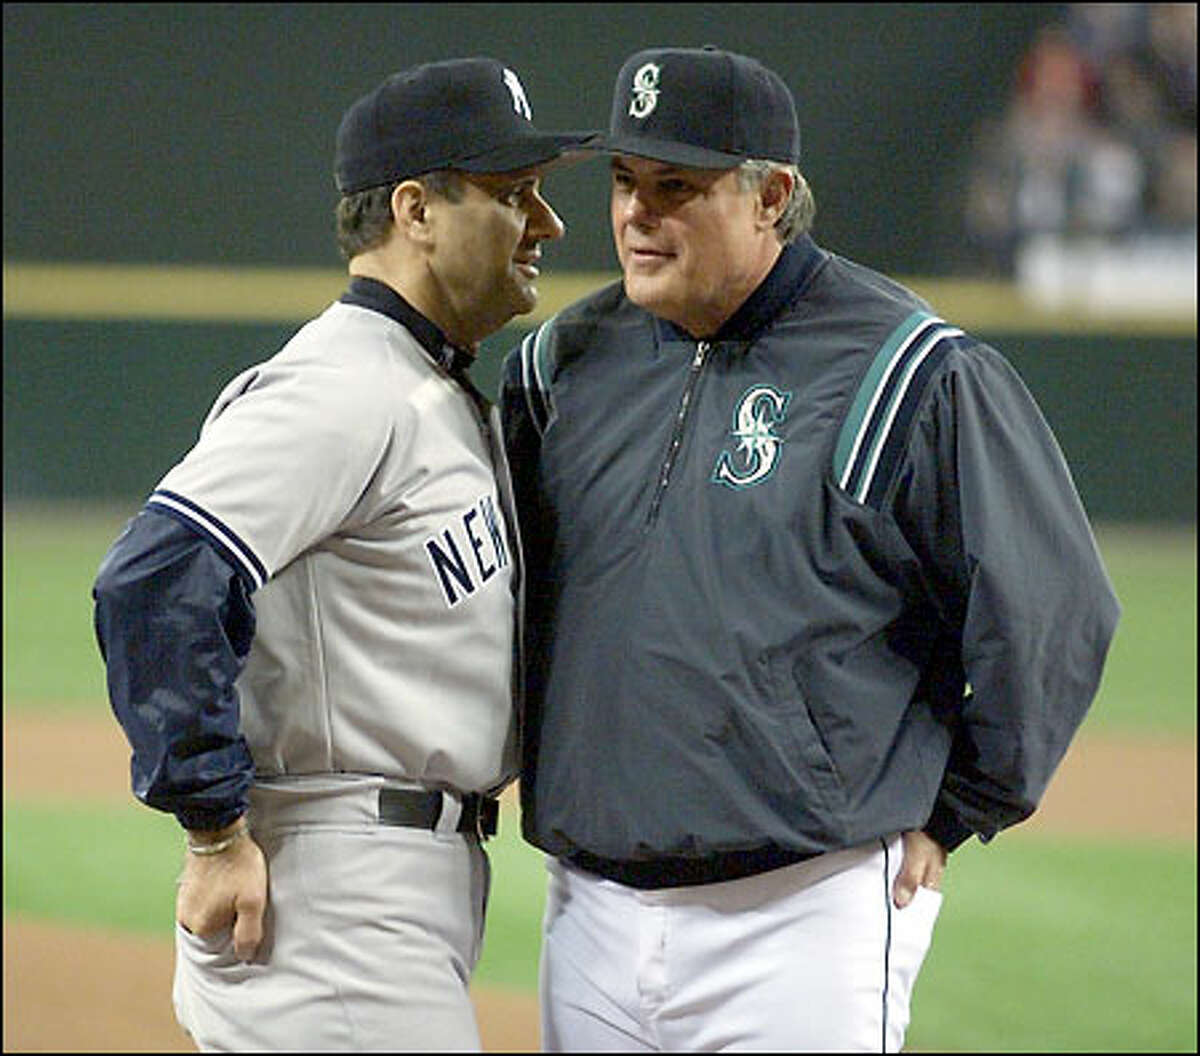 Yankees manager Joe Torre selected Mariners manager Lou Piniella to join him in the All-Star dugout for the second consecutive year. Piniella managed the NL All-Stars in 1991 and represented Kansas City as a player on the AL team in 1972.